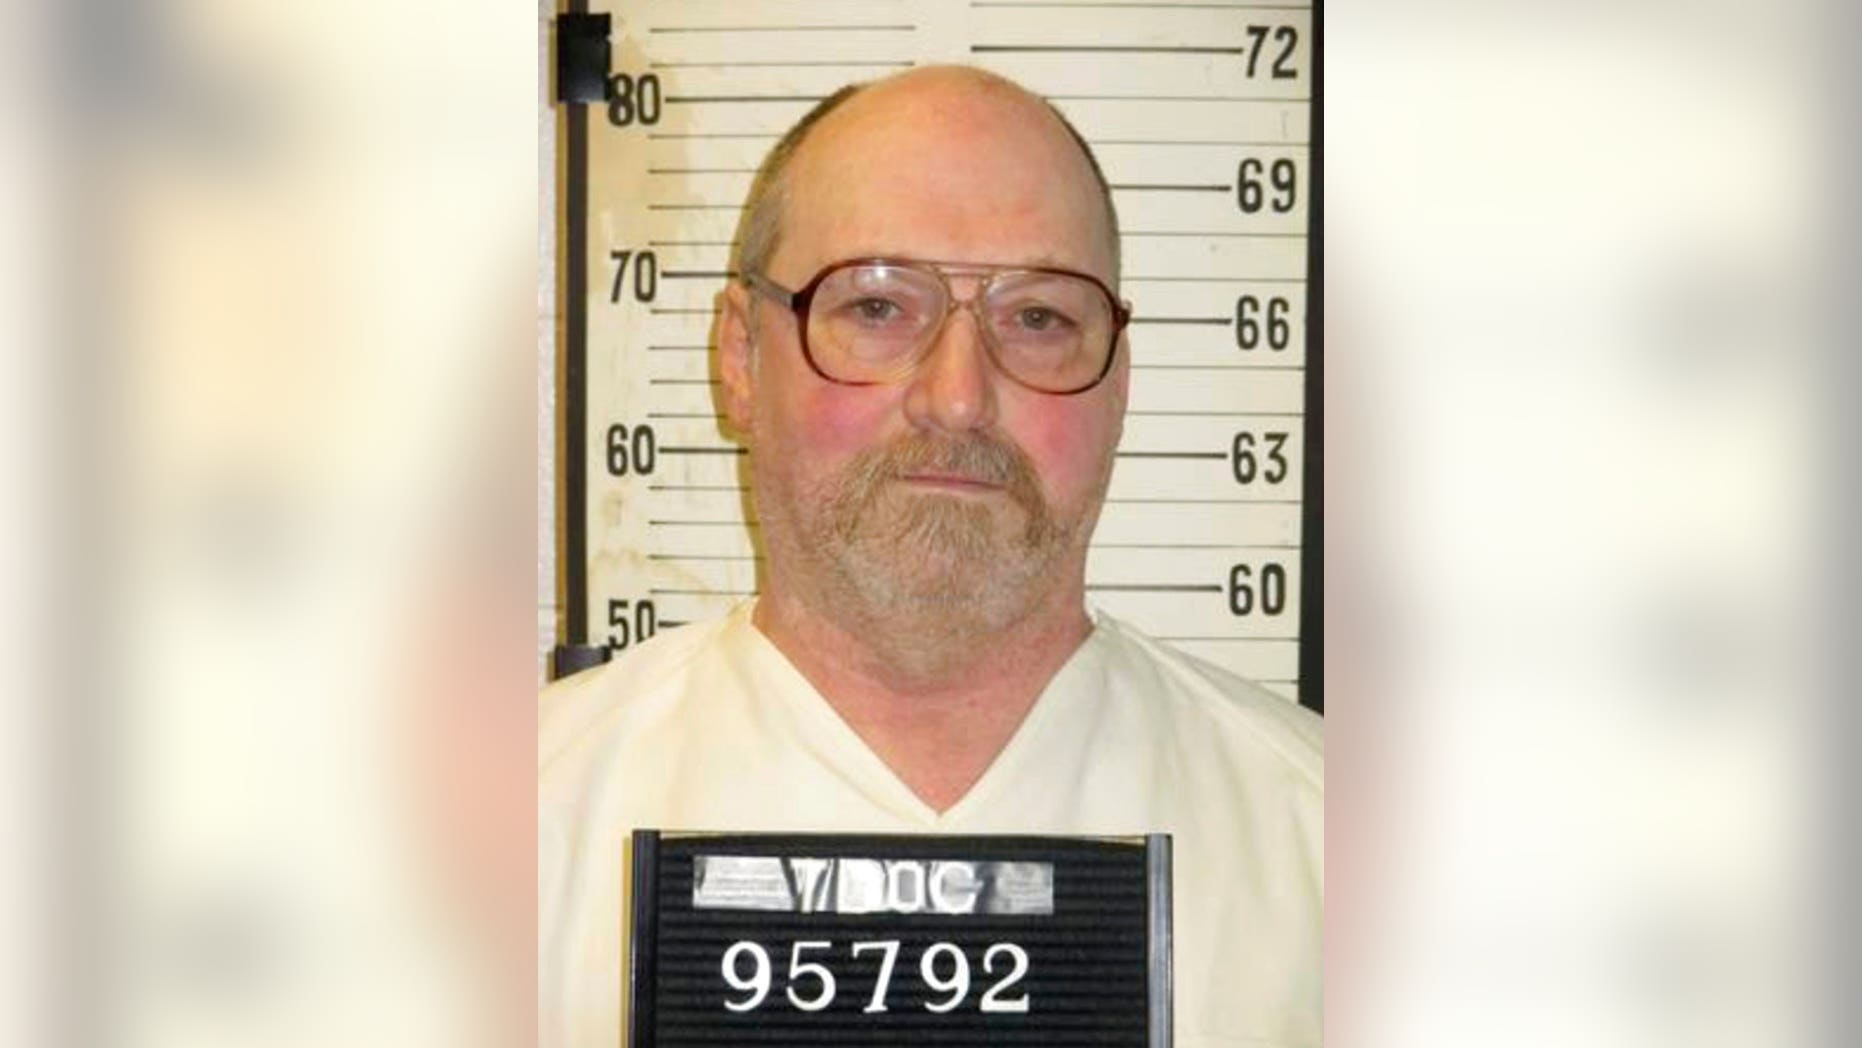 David Earl Miller, 61, was pronounced dead at 7:25 p.m. in Nashville, Tennessee on Thursday. He spent 36 years on the state's death row.